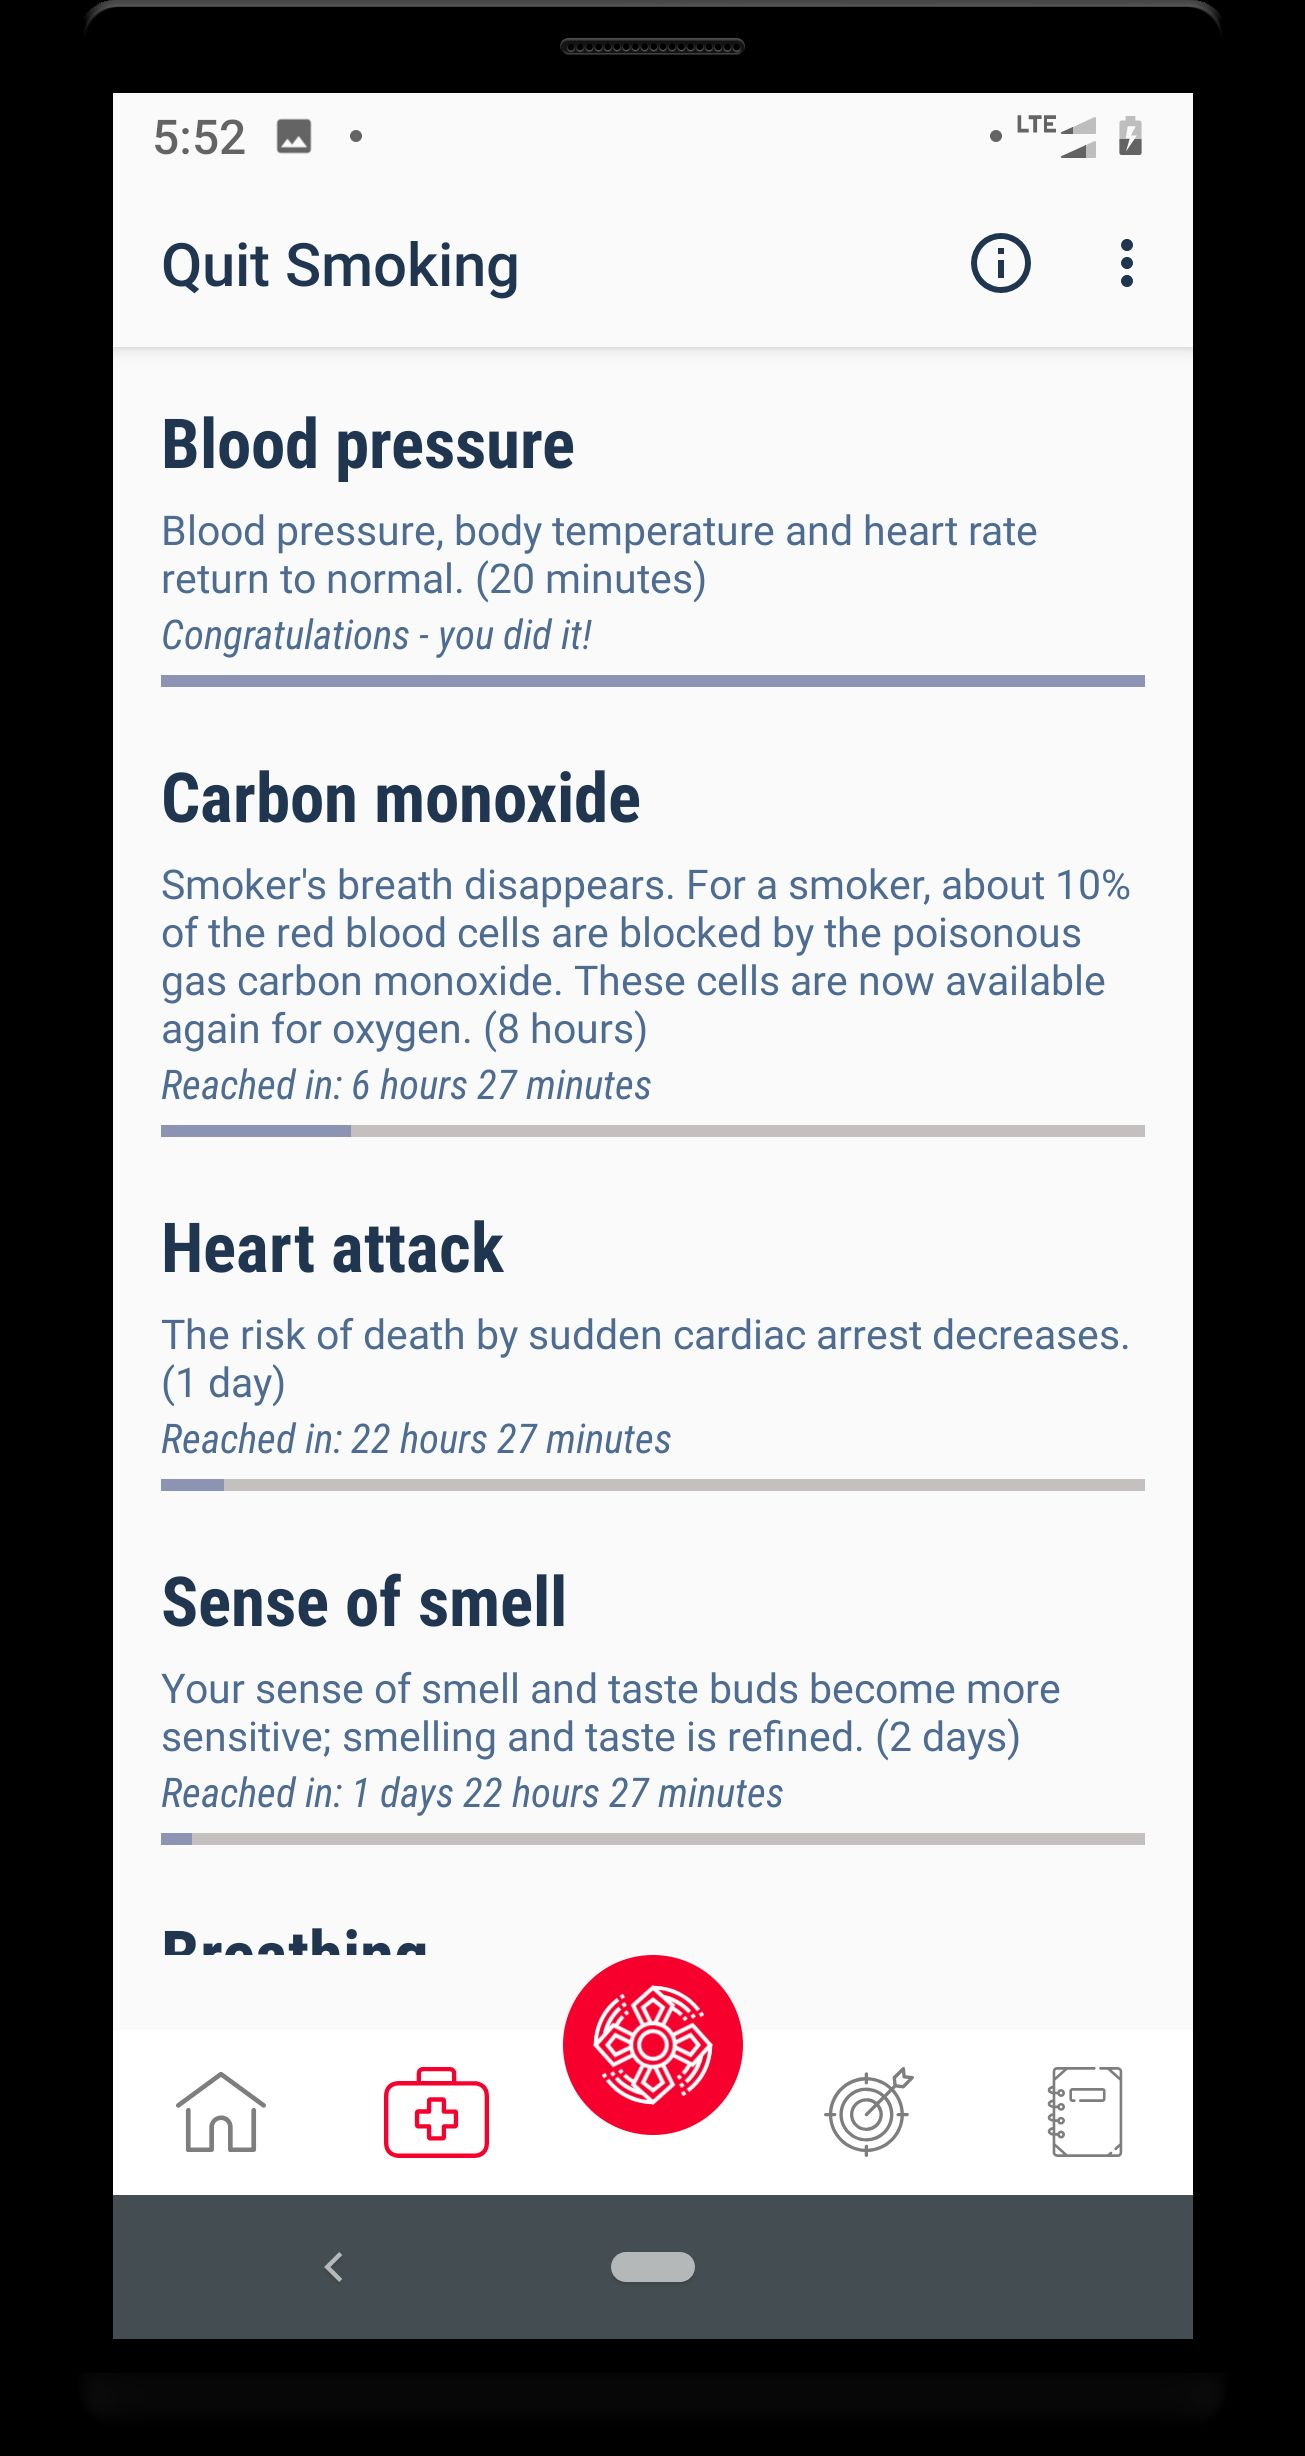 Quit smoking - Android Source code Screenshot 4